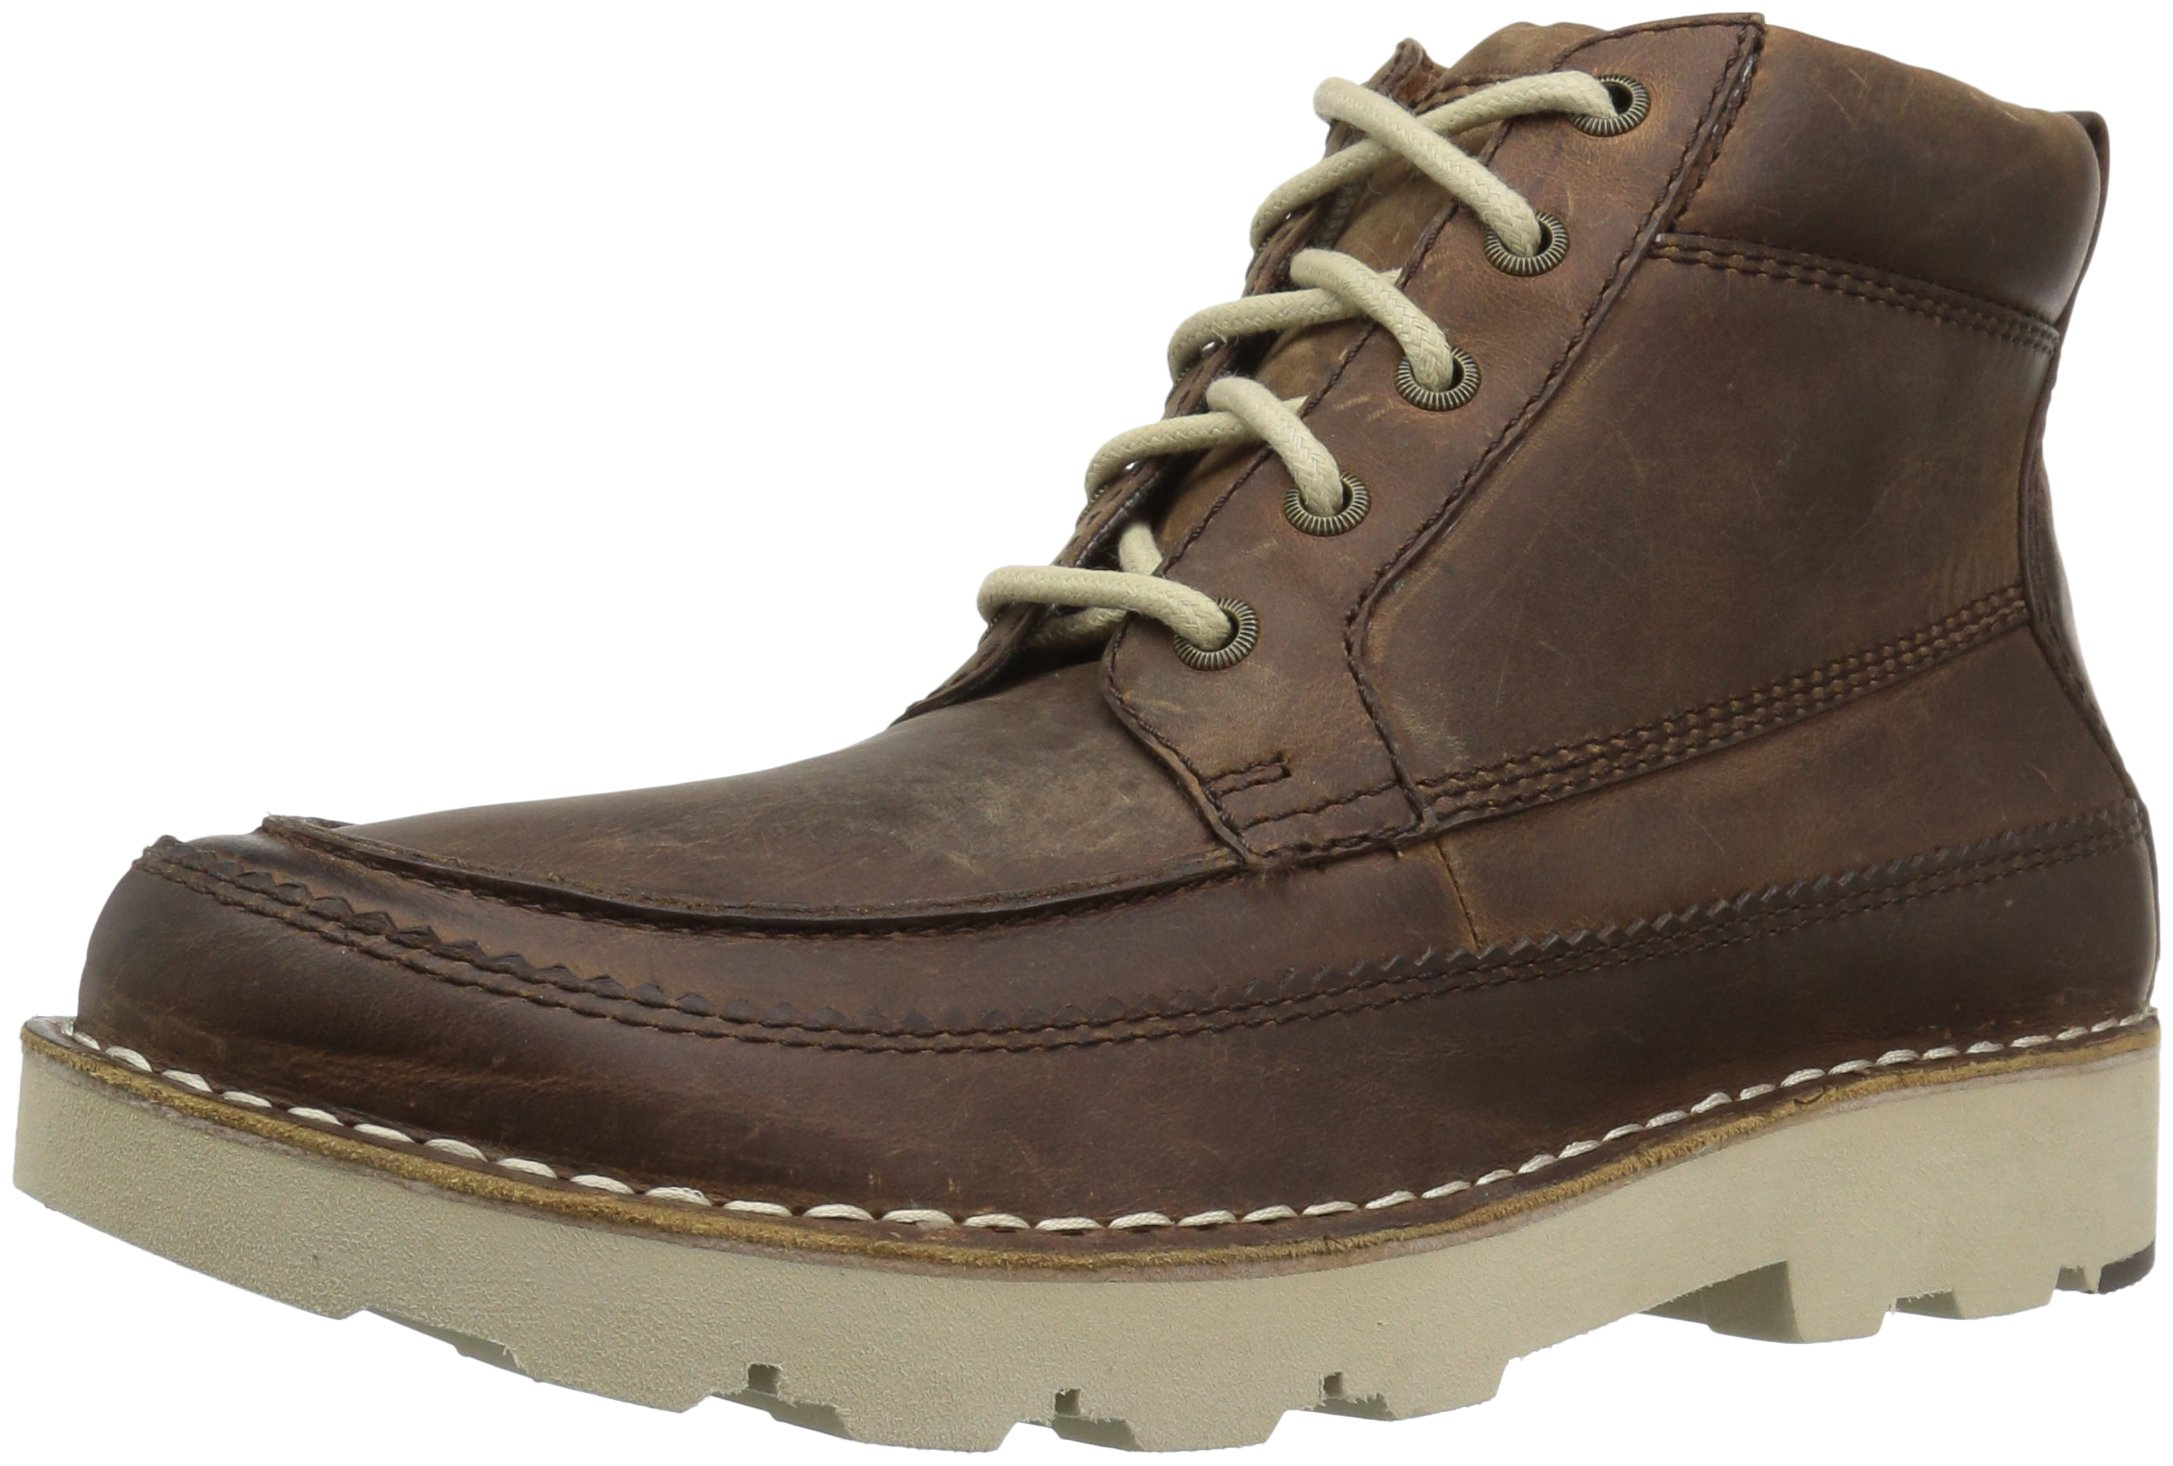 206 Collective Men's Pioneer Moc-Toe Lace-up Boot, Brown, 9 D US